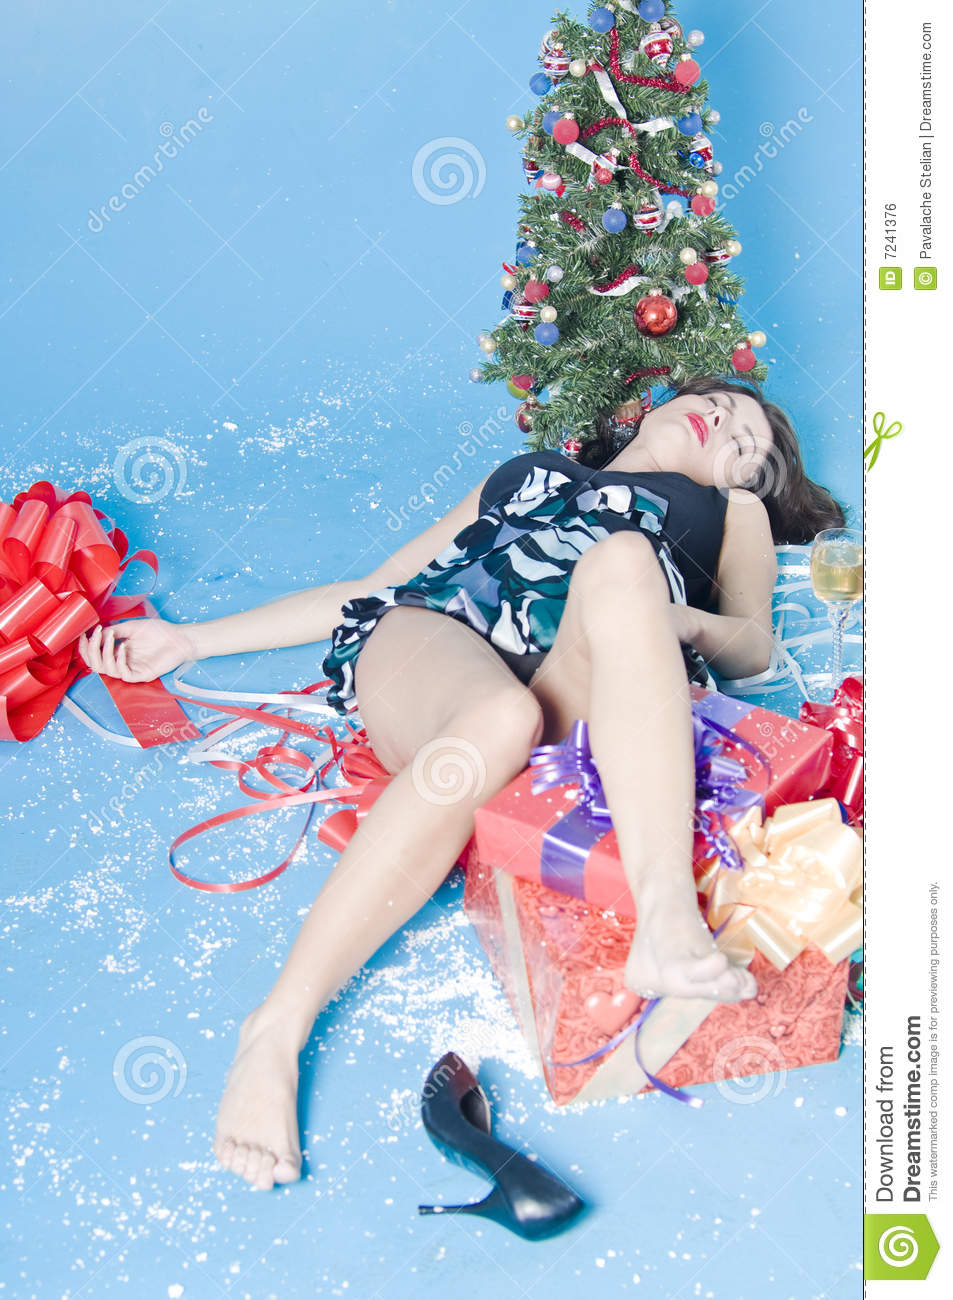 After Christmas Party Royalty Free Stock Image - Image: 7241376